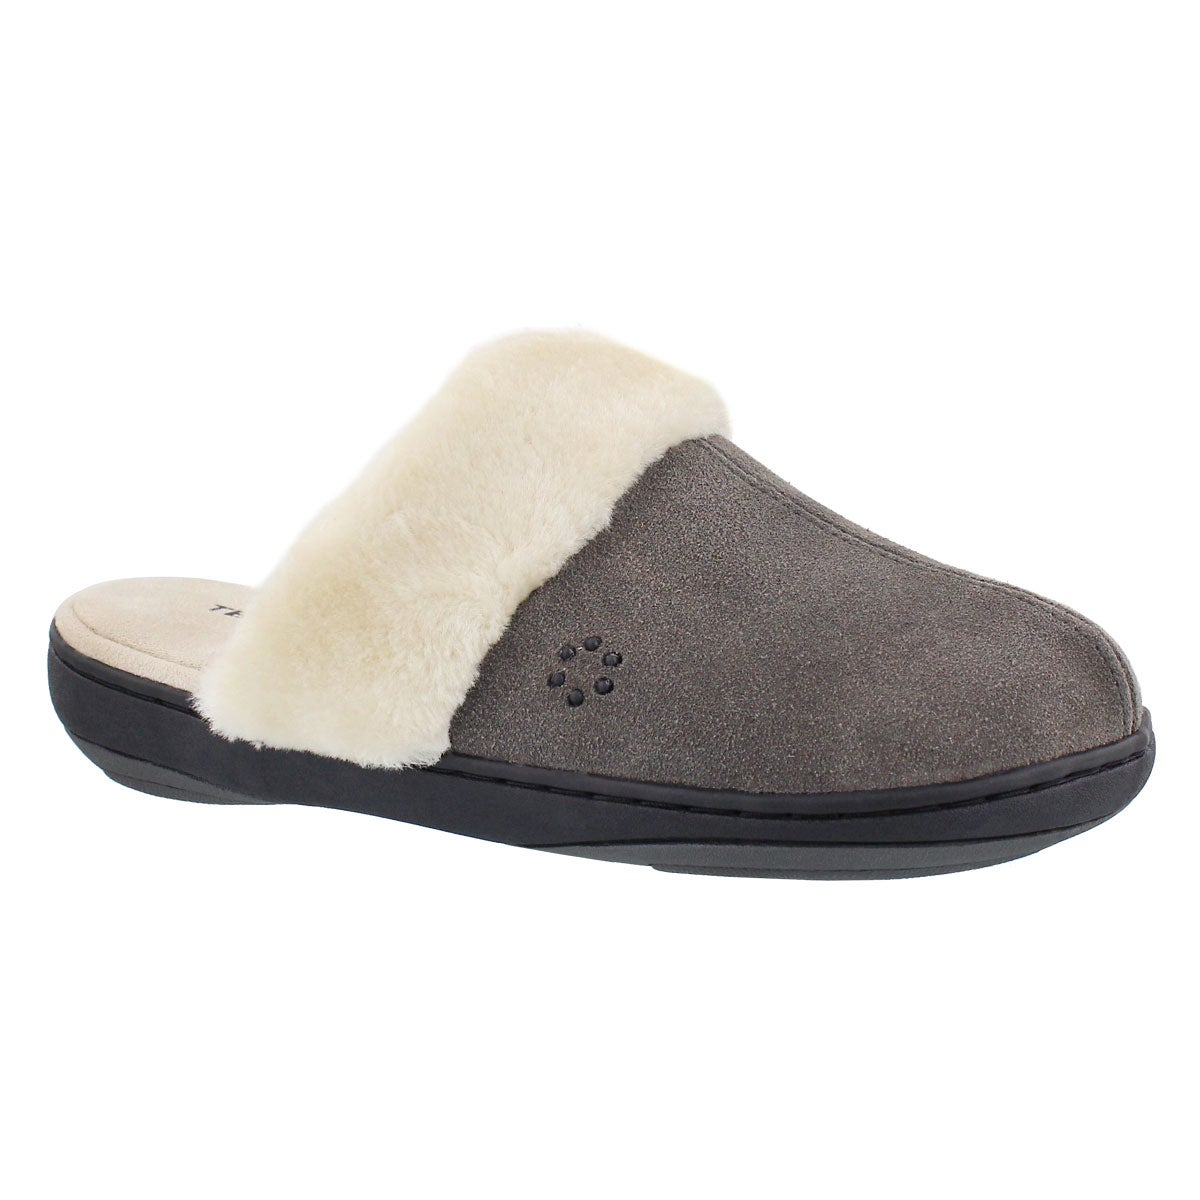 Lds Kensley shale open back slipper